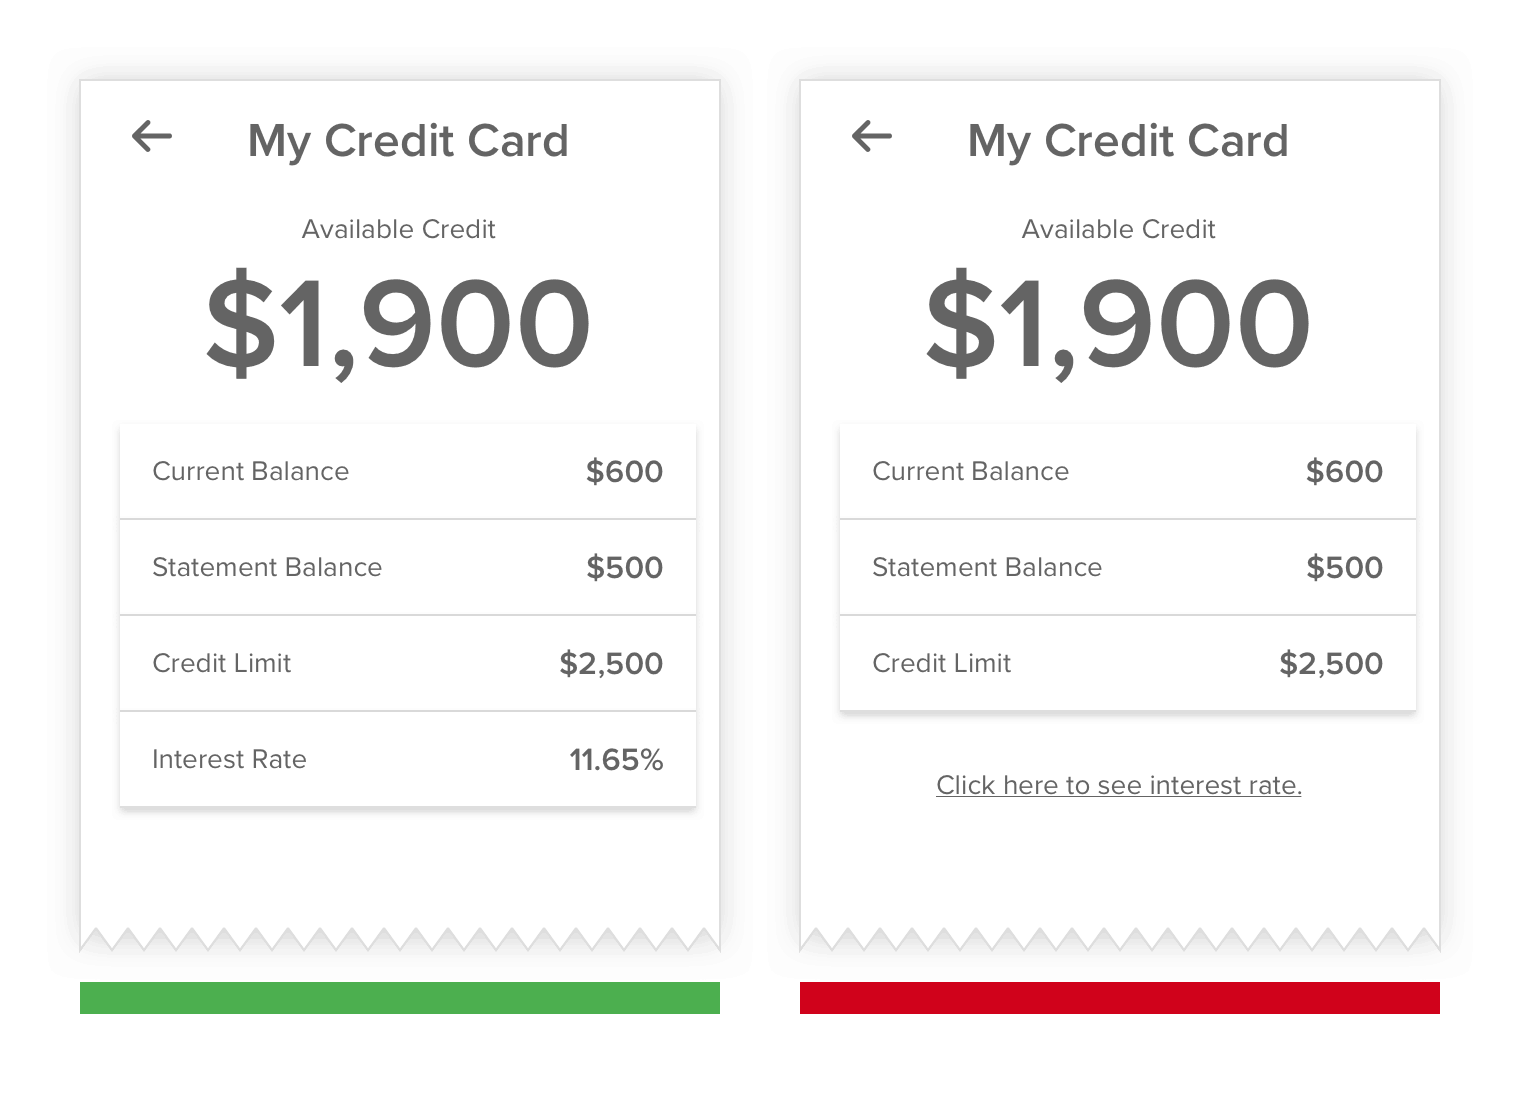 my credit card - showing info